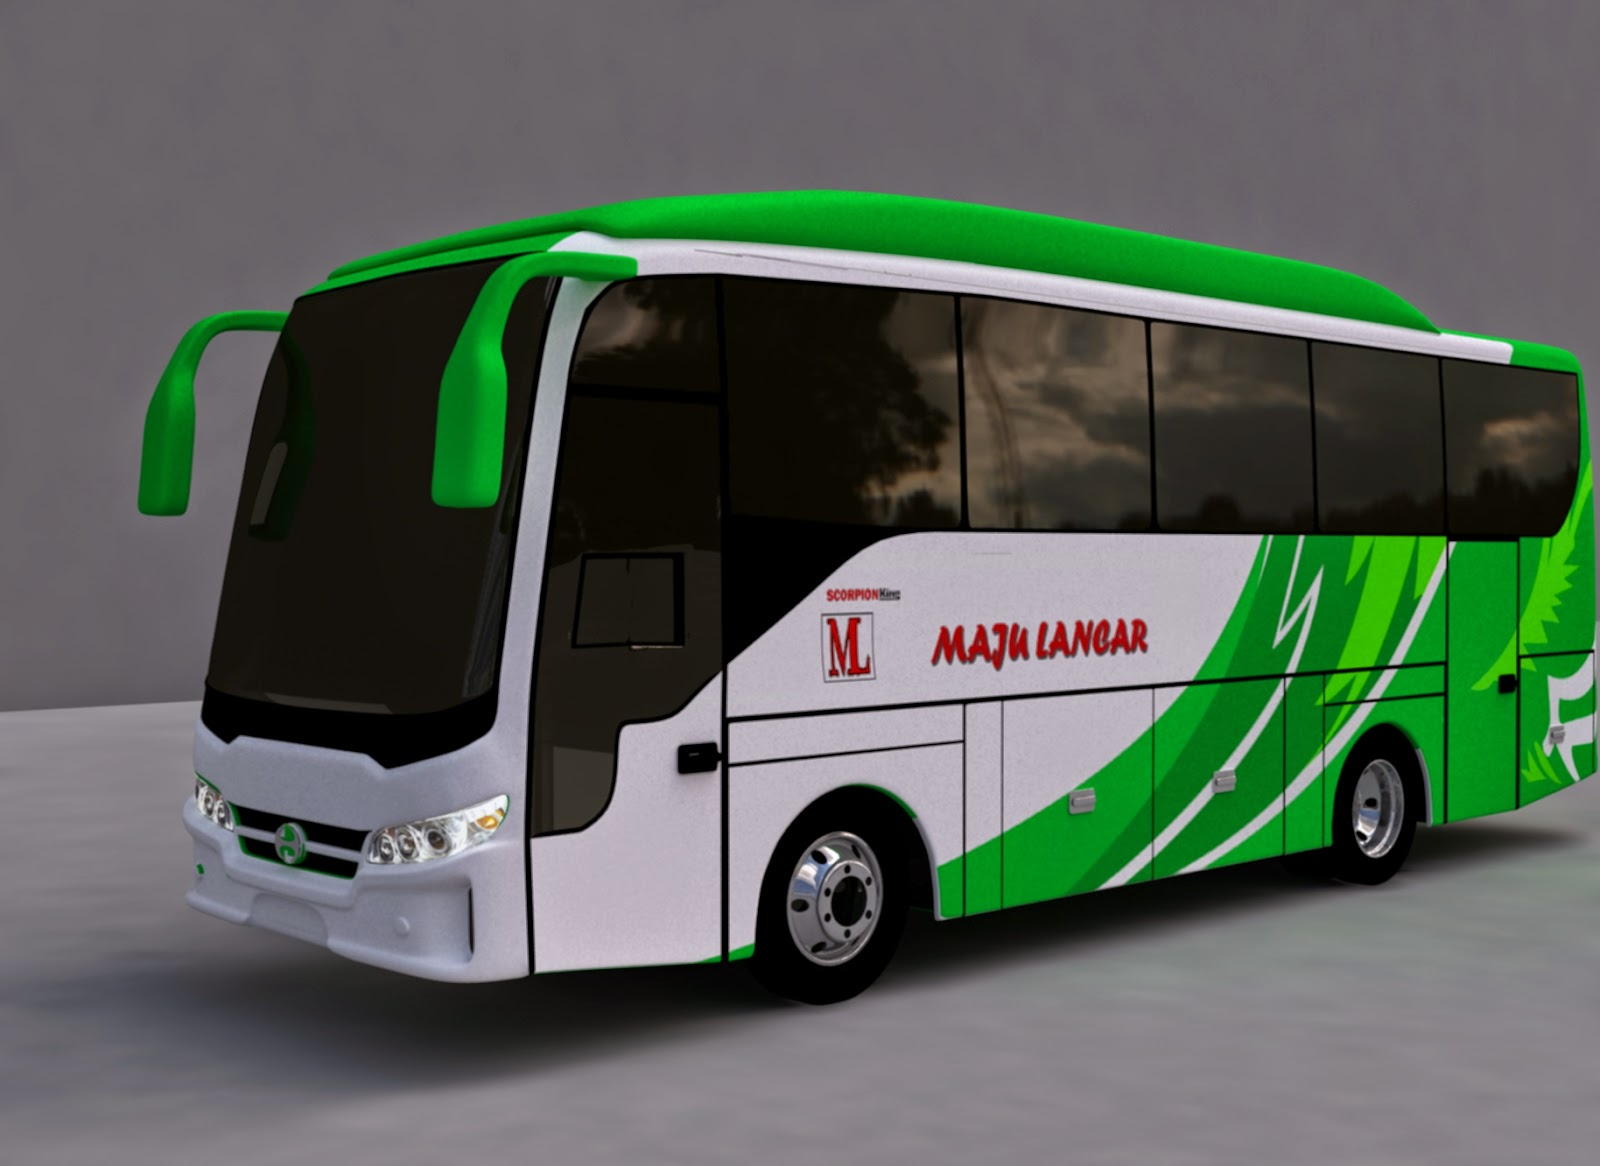 Design bus BEAT MD PO Maju Lancar